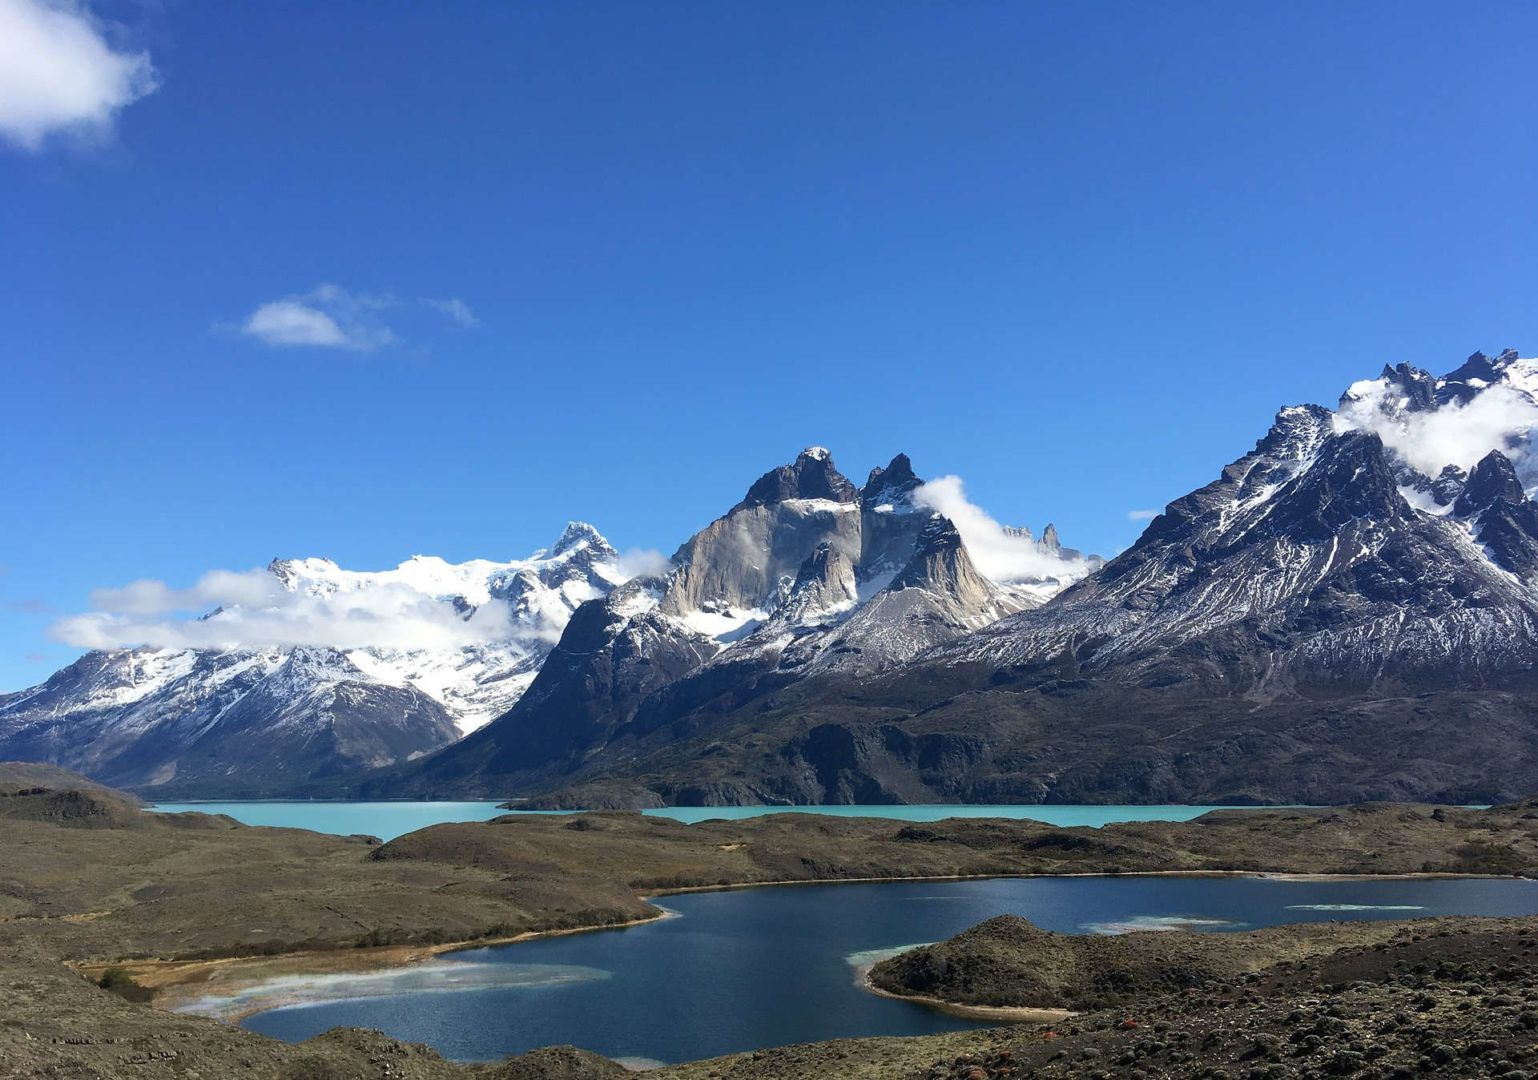 Vista de Torres del Paine, Chile